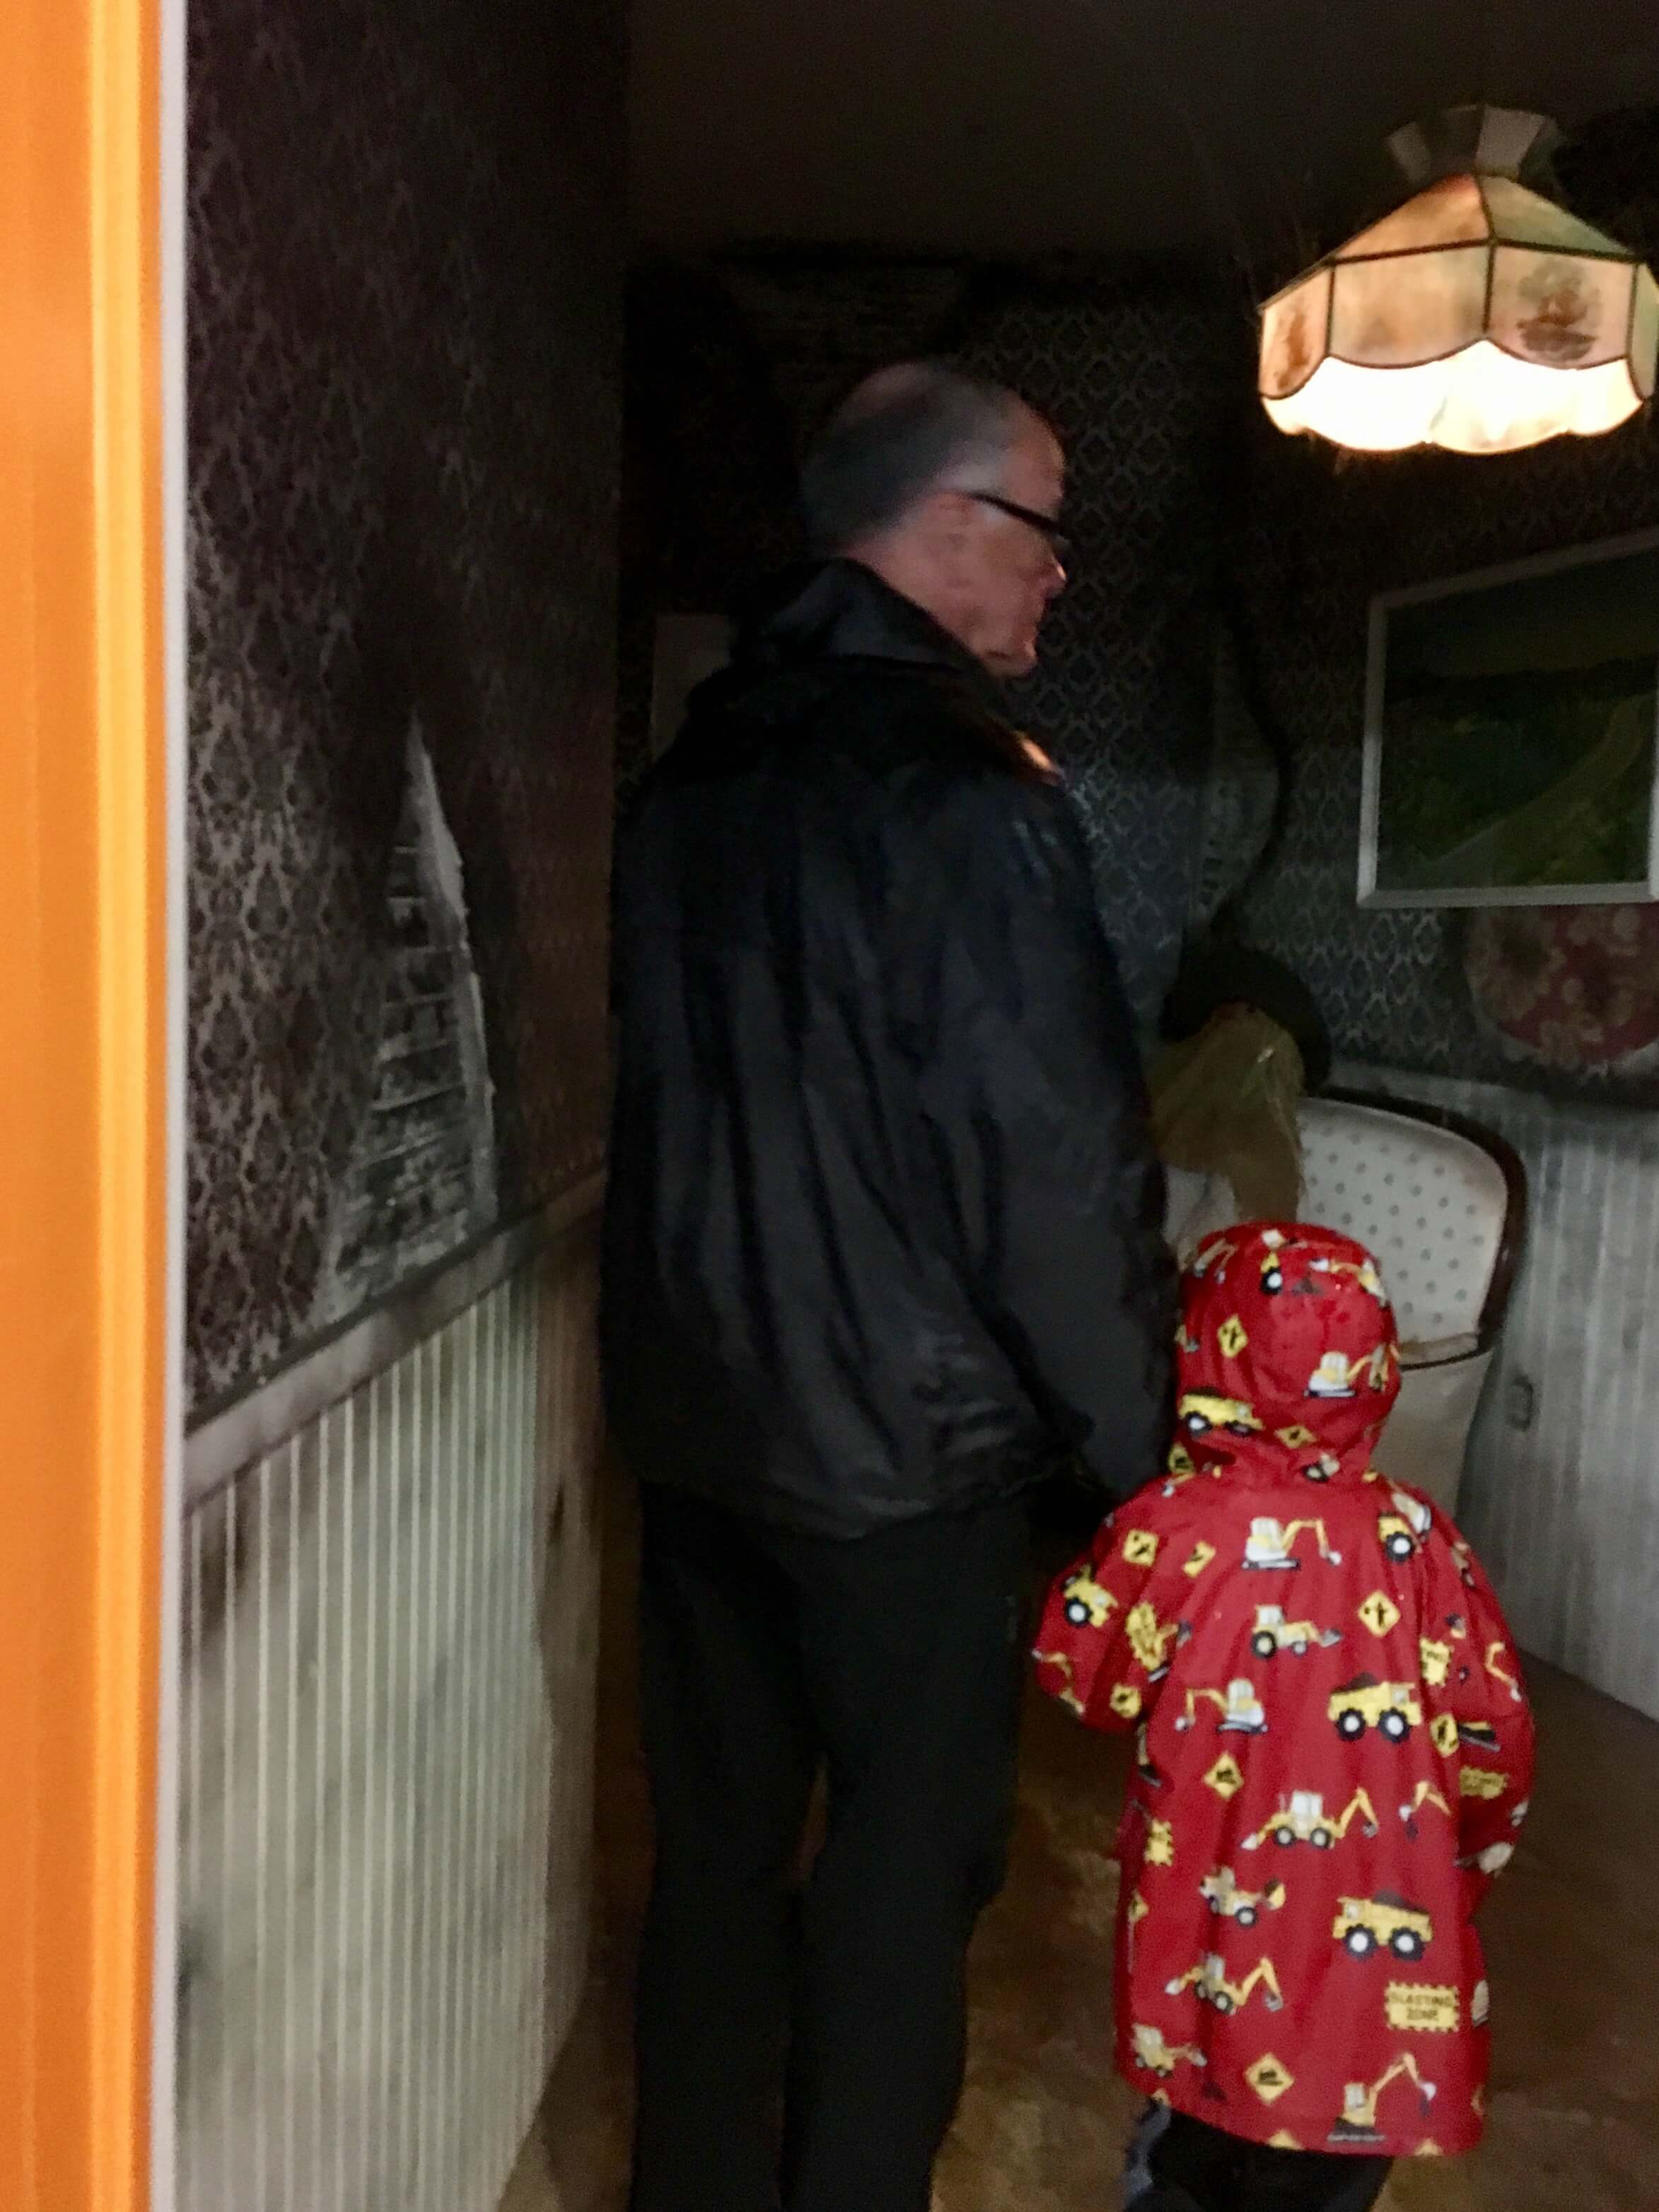 cavendish pei rainy day family fun ideas haunted hotel route 6 vacation pickle planet